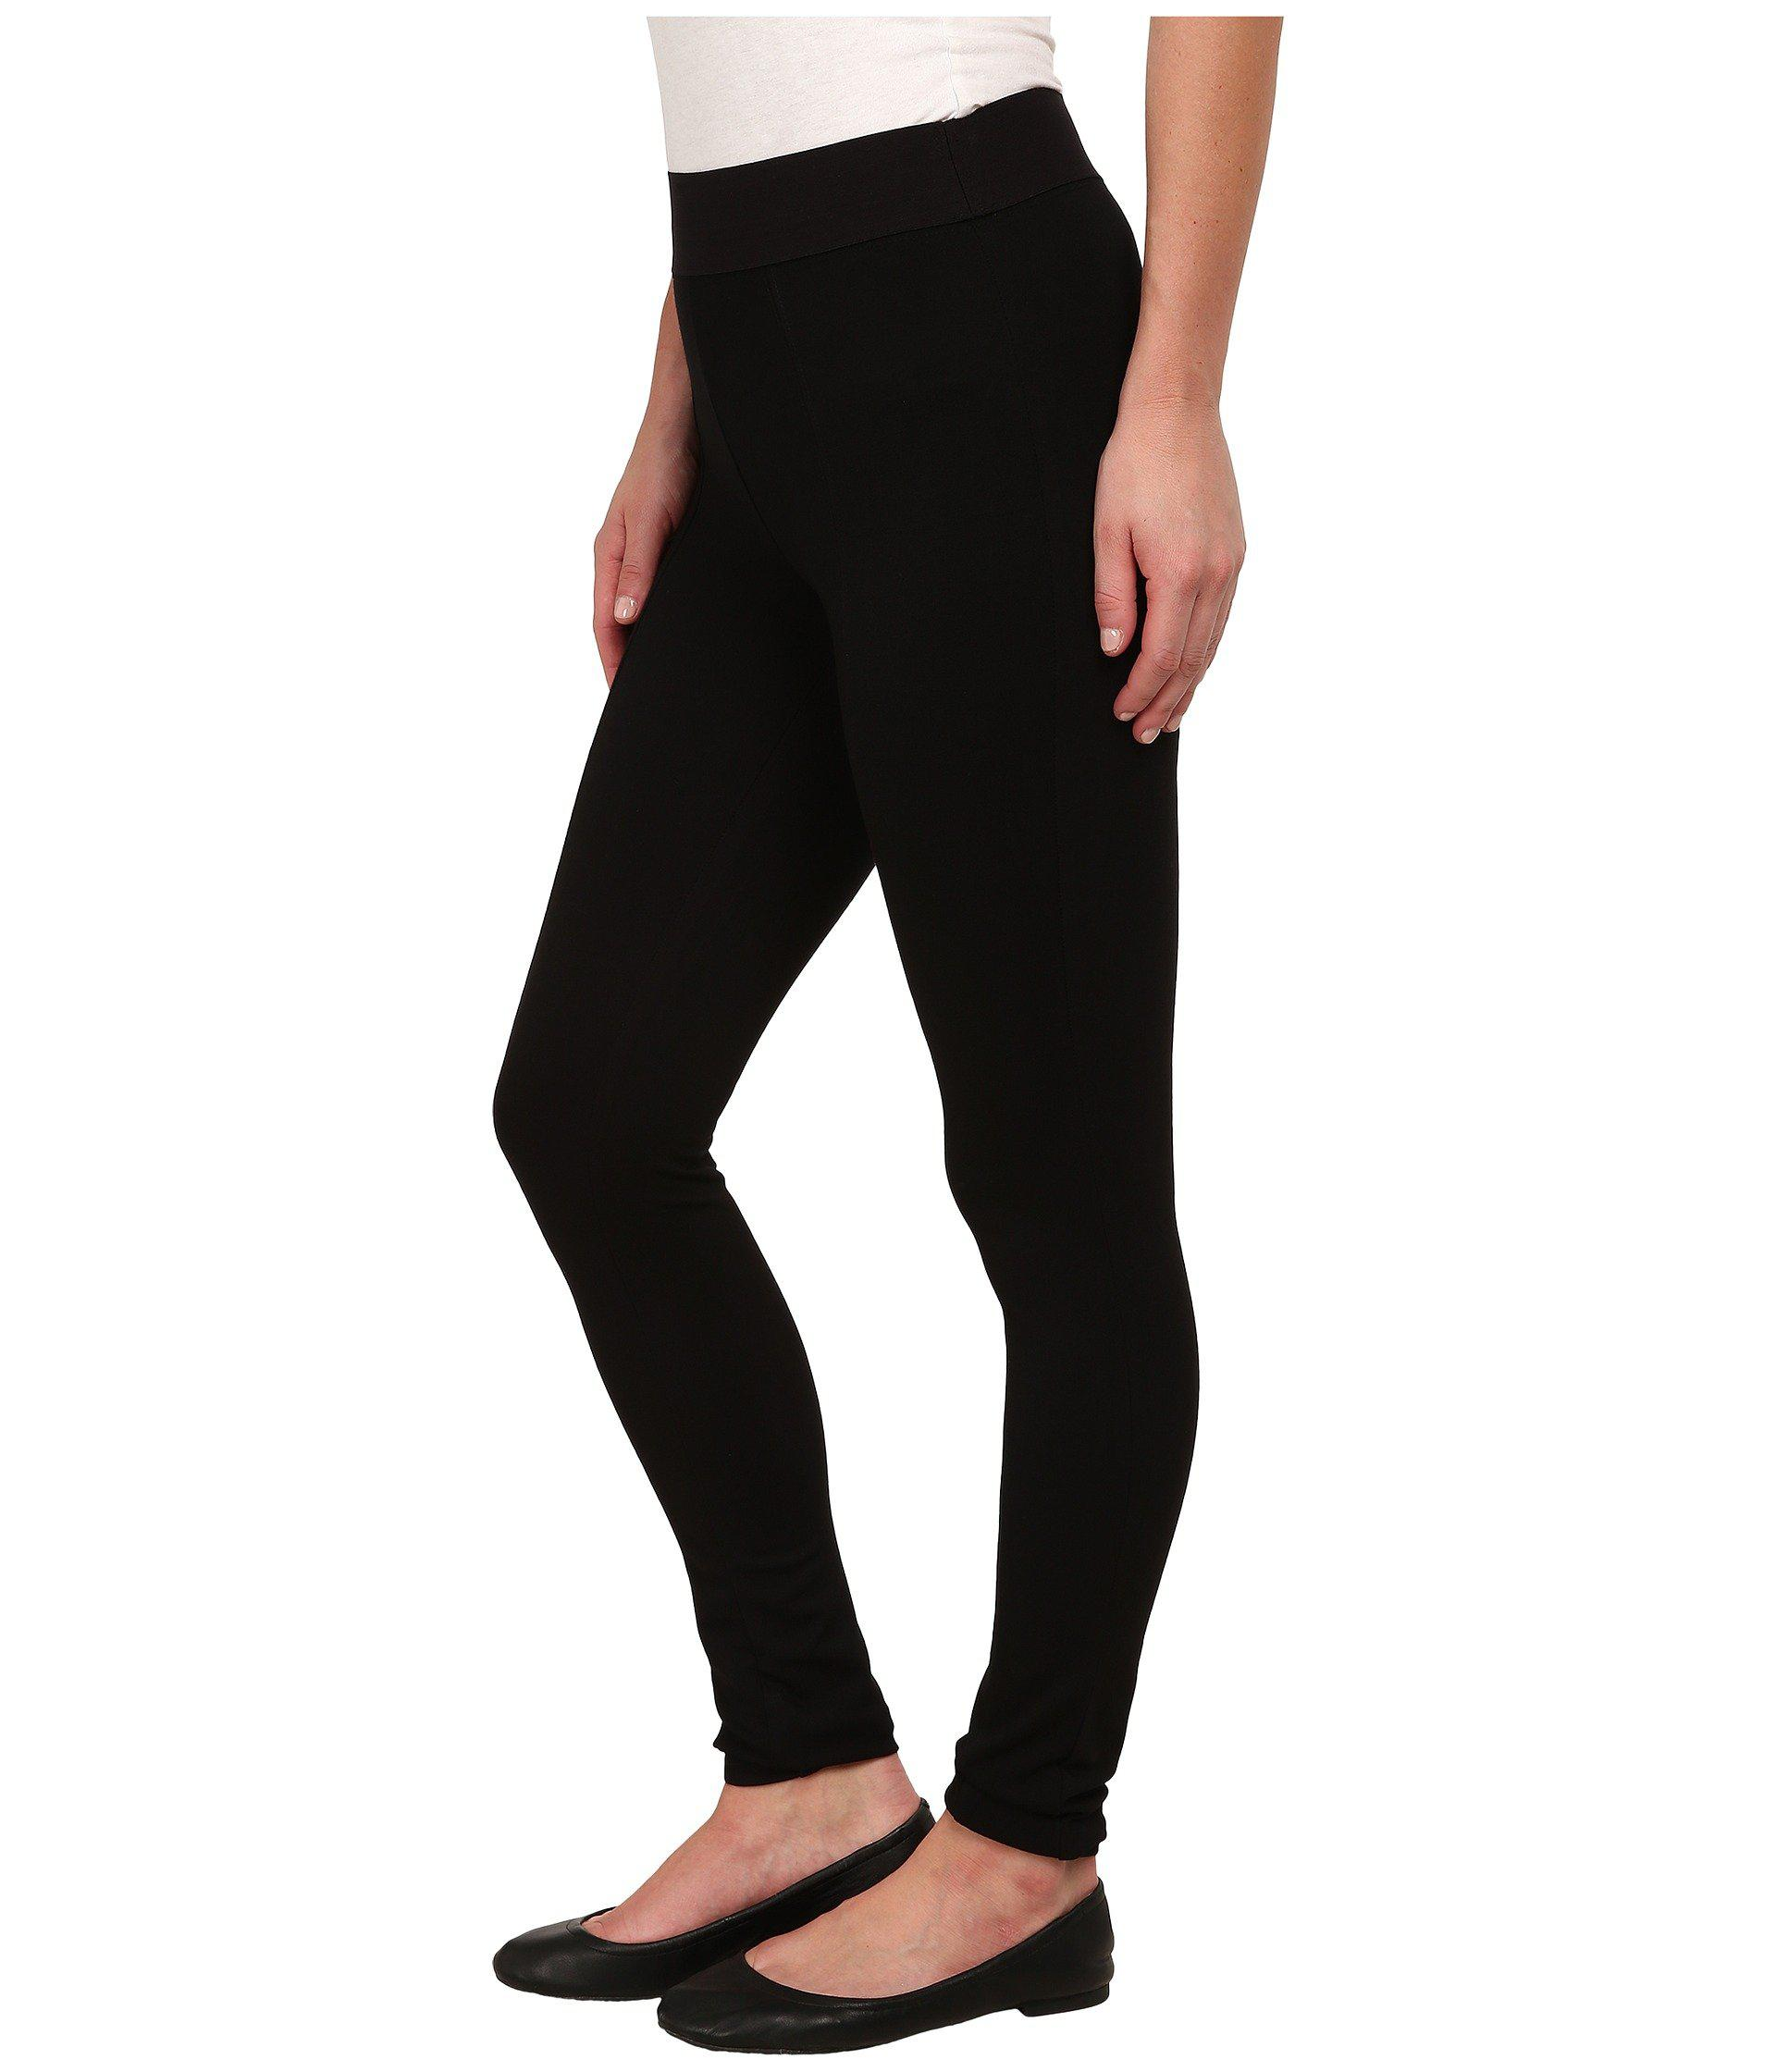 278a242e2f9542 Lyst - Hue Blackout Leggings (black) Women's Casual Pants in Black